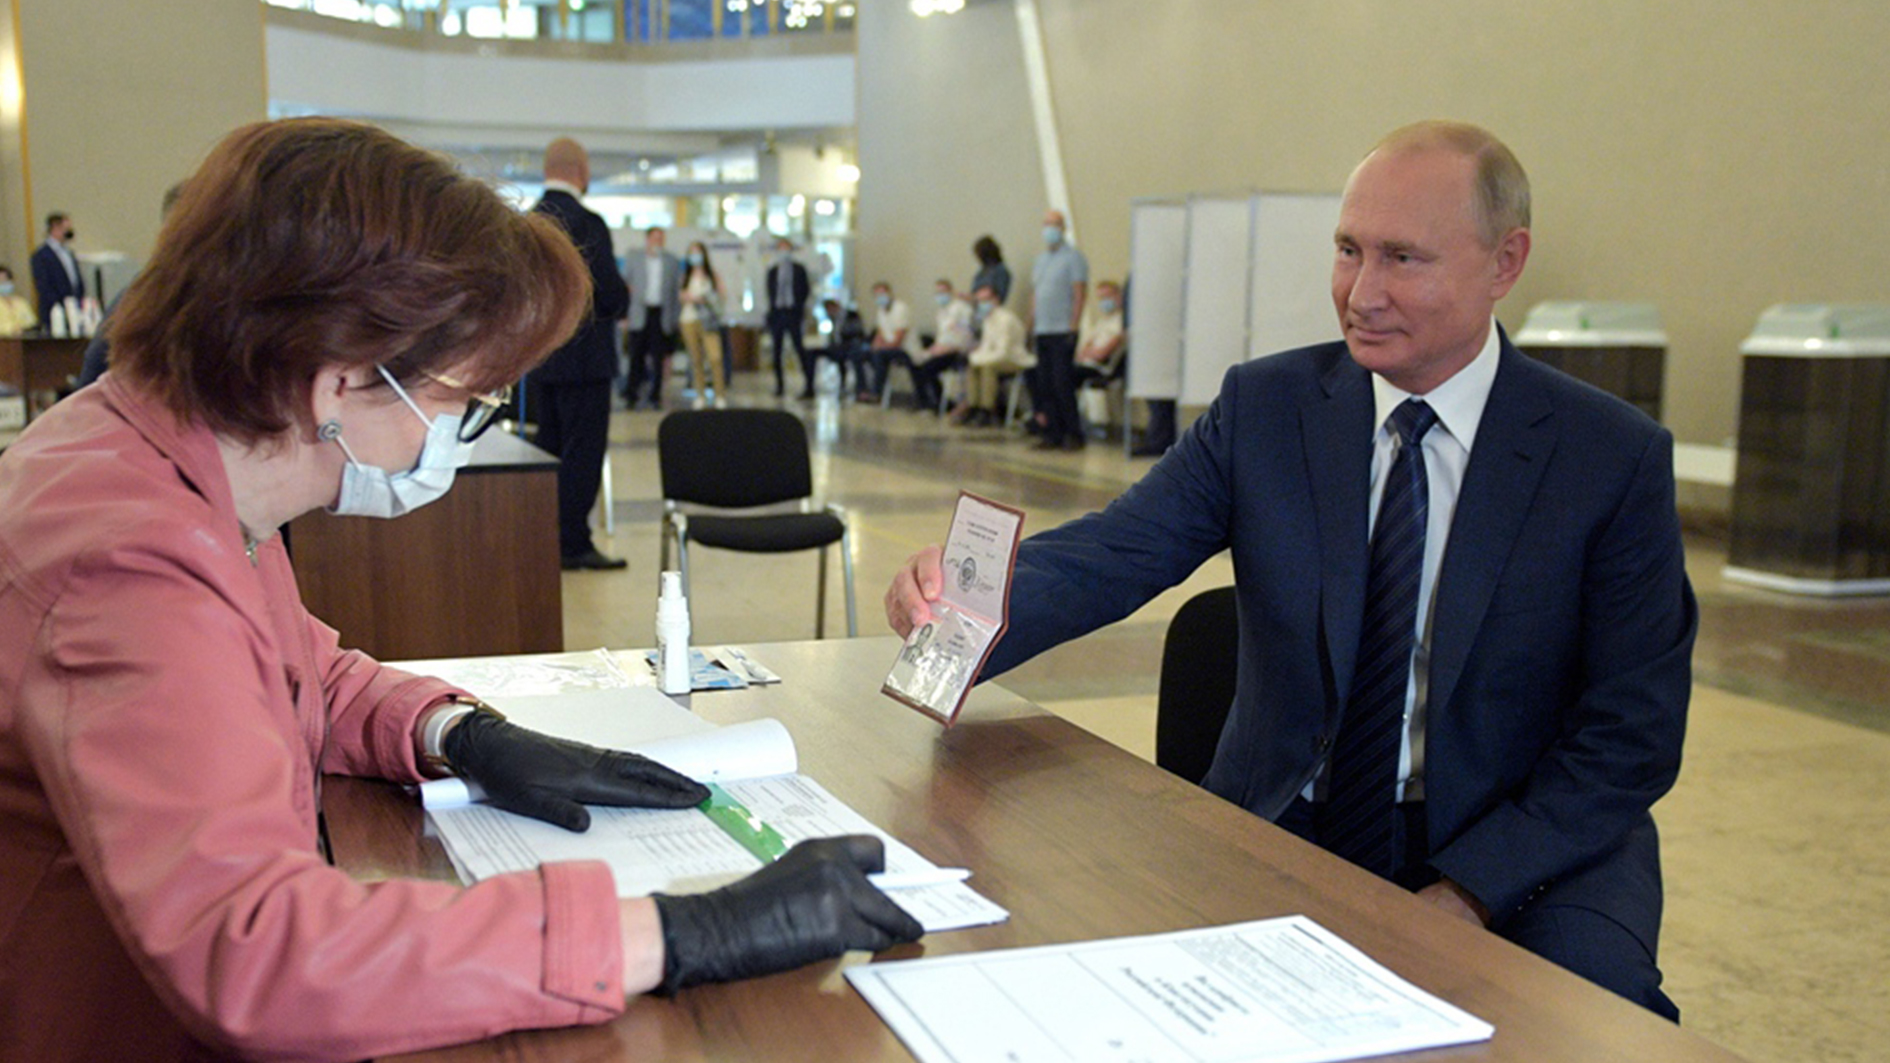 Putin casts vote on constitutional reforms that could extend his rule